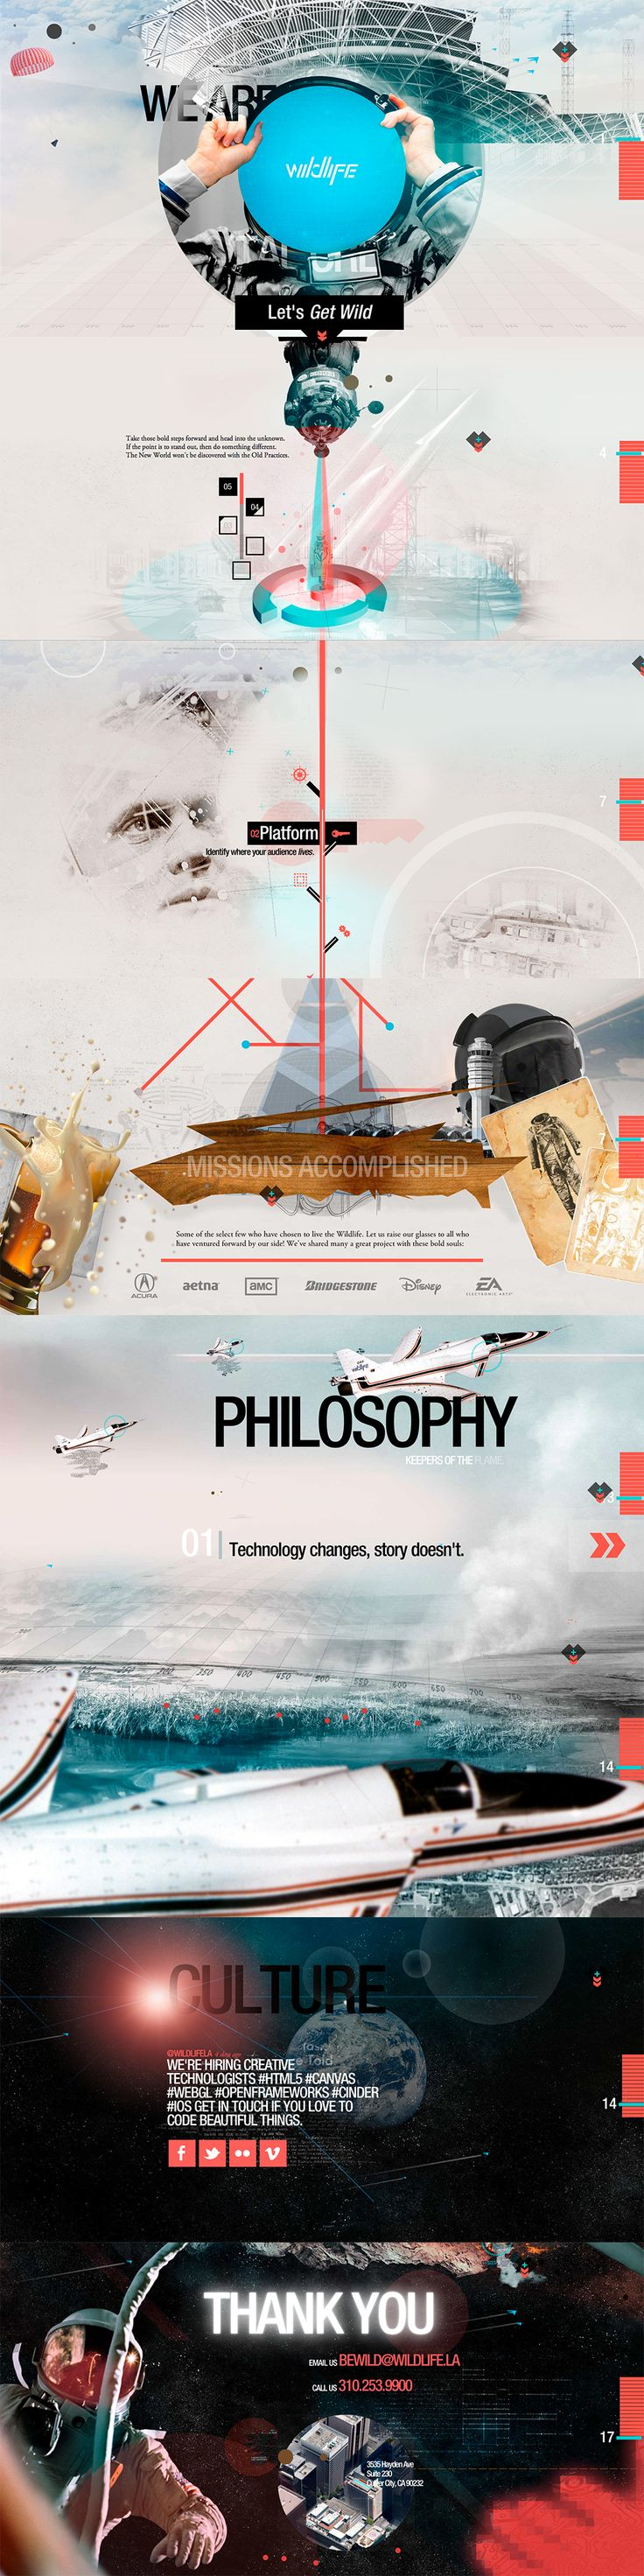 We absolutely love this web design project! So inspiring and motivating.  #webdesign #inspiration